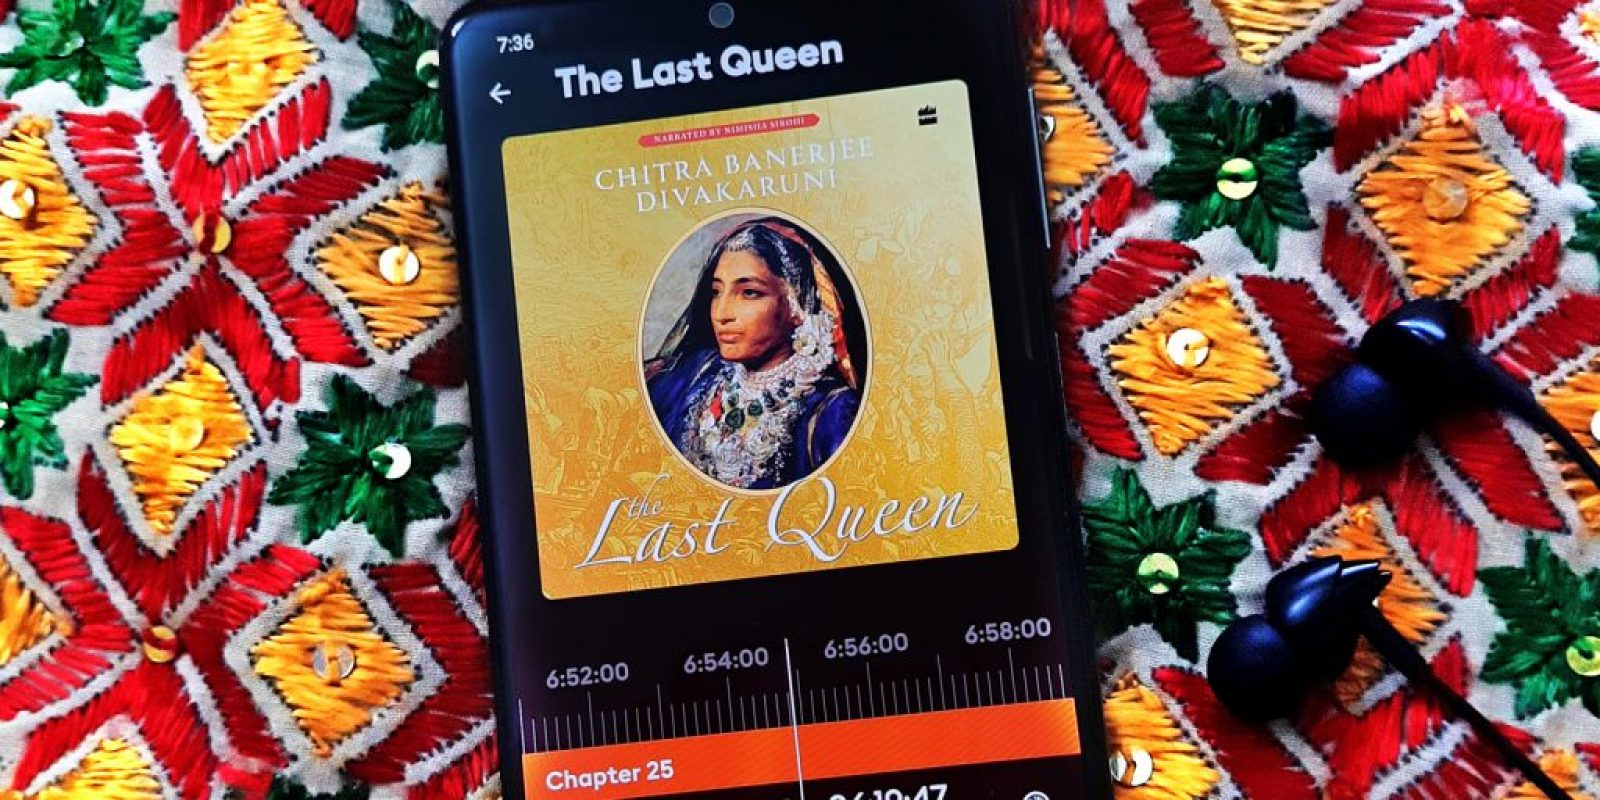 The Last Queen by Chitra Banerjee Divakaruni Book Review